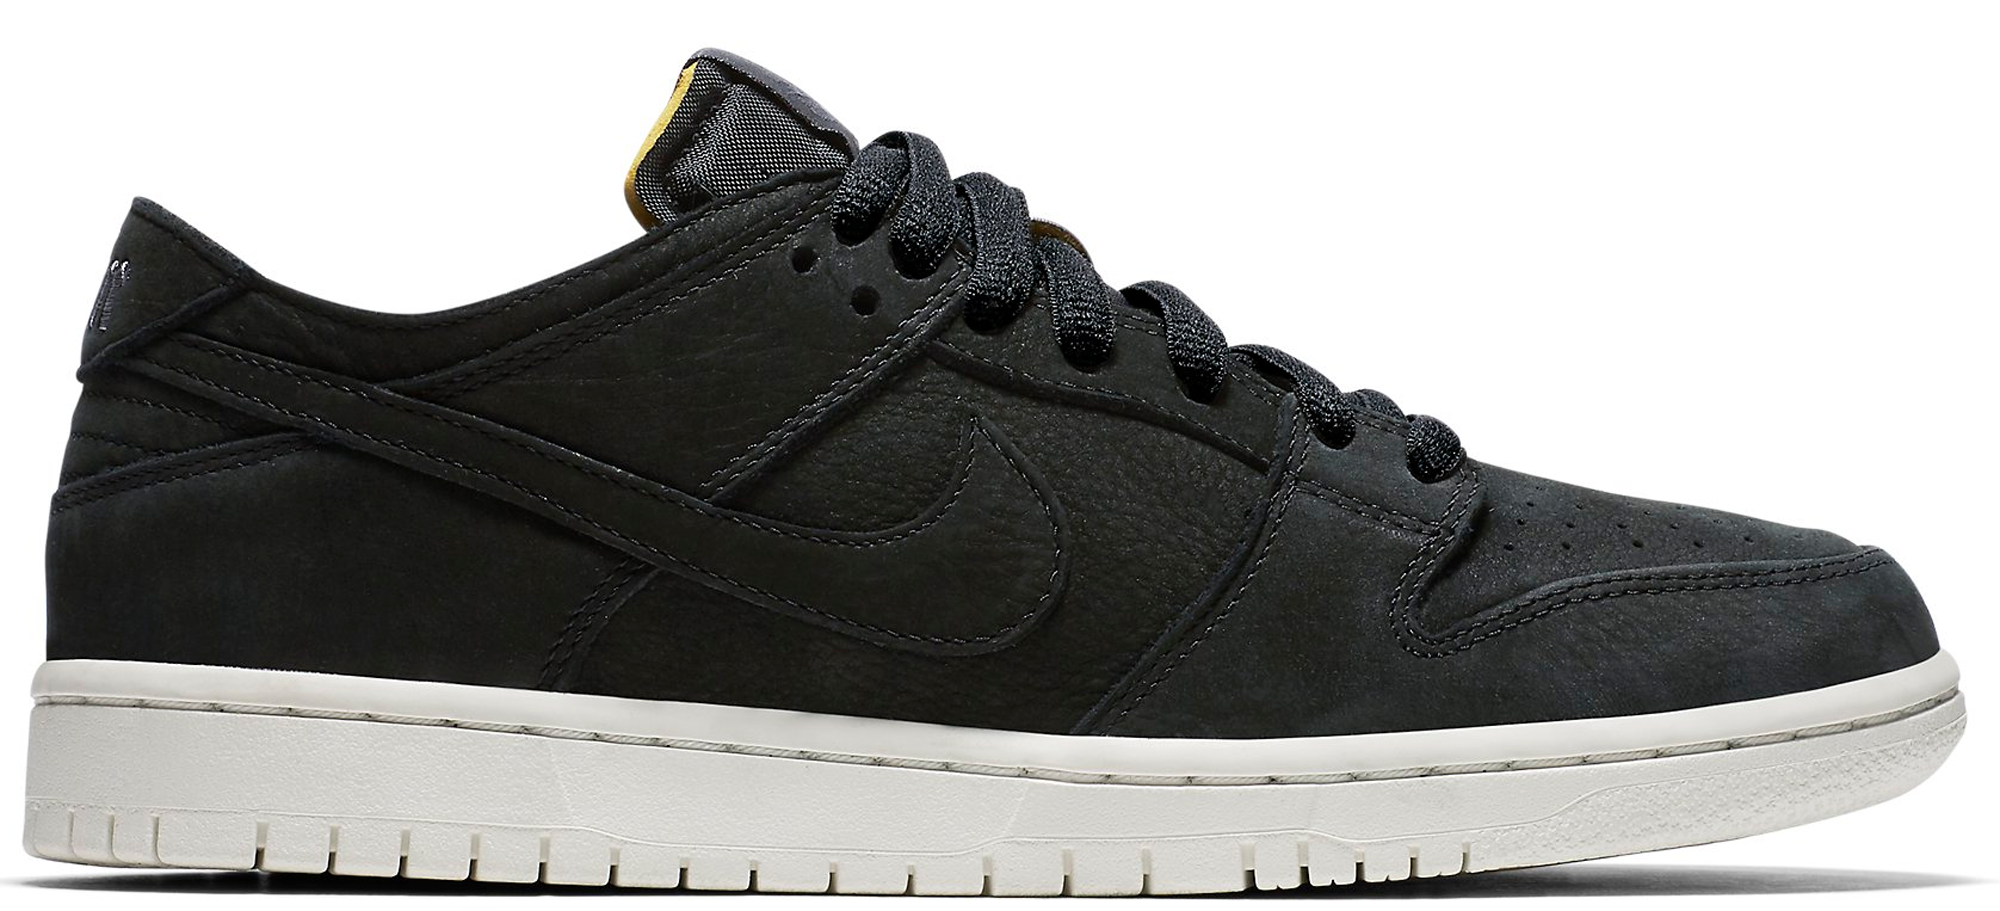 80c65f2c61a9 ... pro black gum fa3c0 d3458  spain nike sb dunk low decon black 02640  c7de0